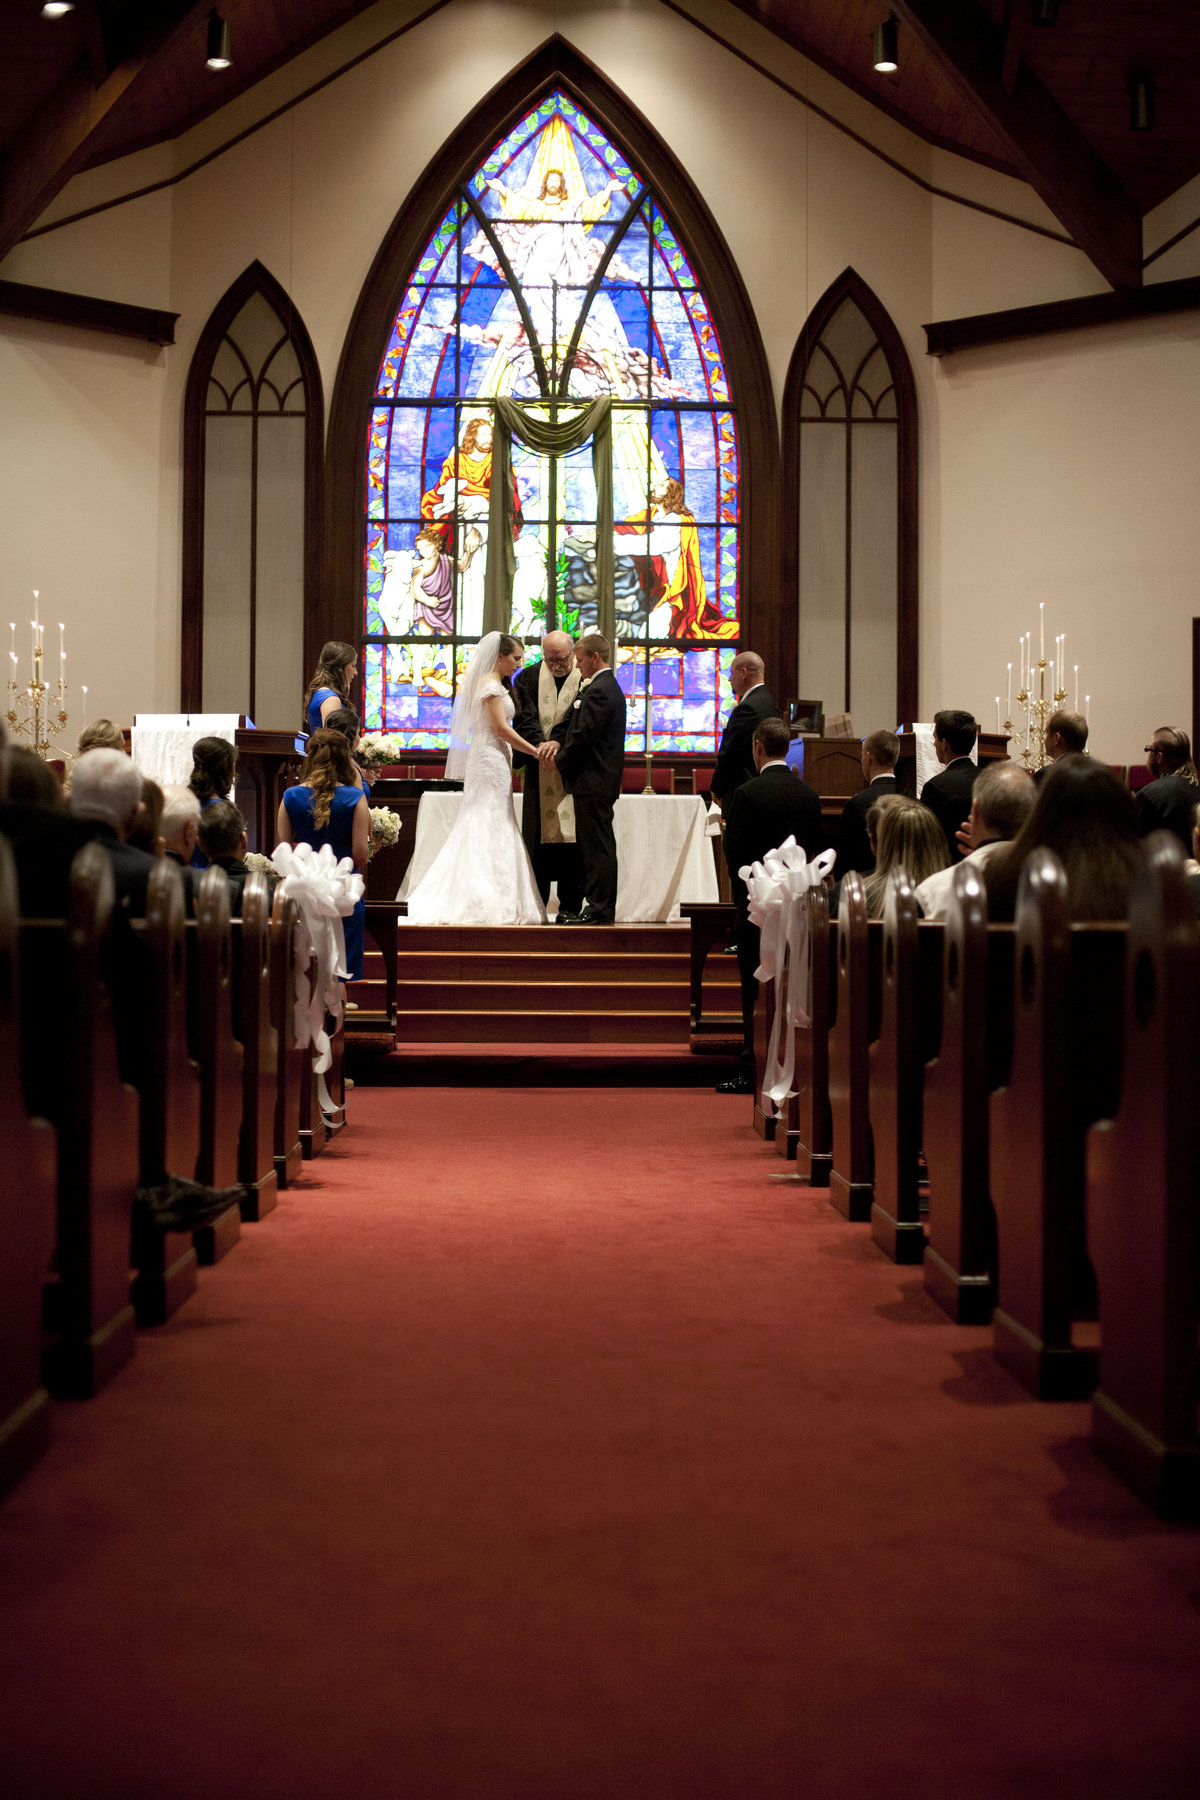 Wedding Ceremony in a church with stain glass window